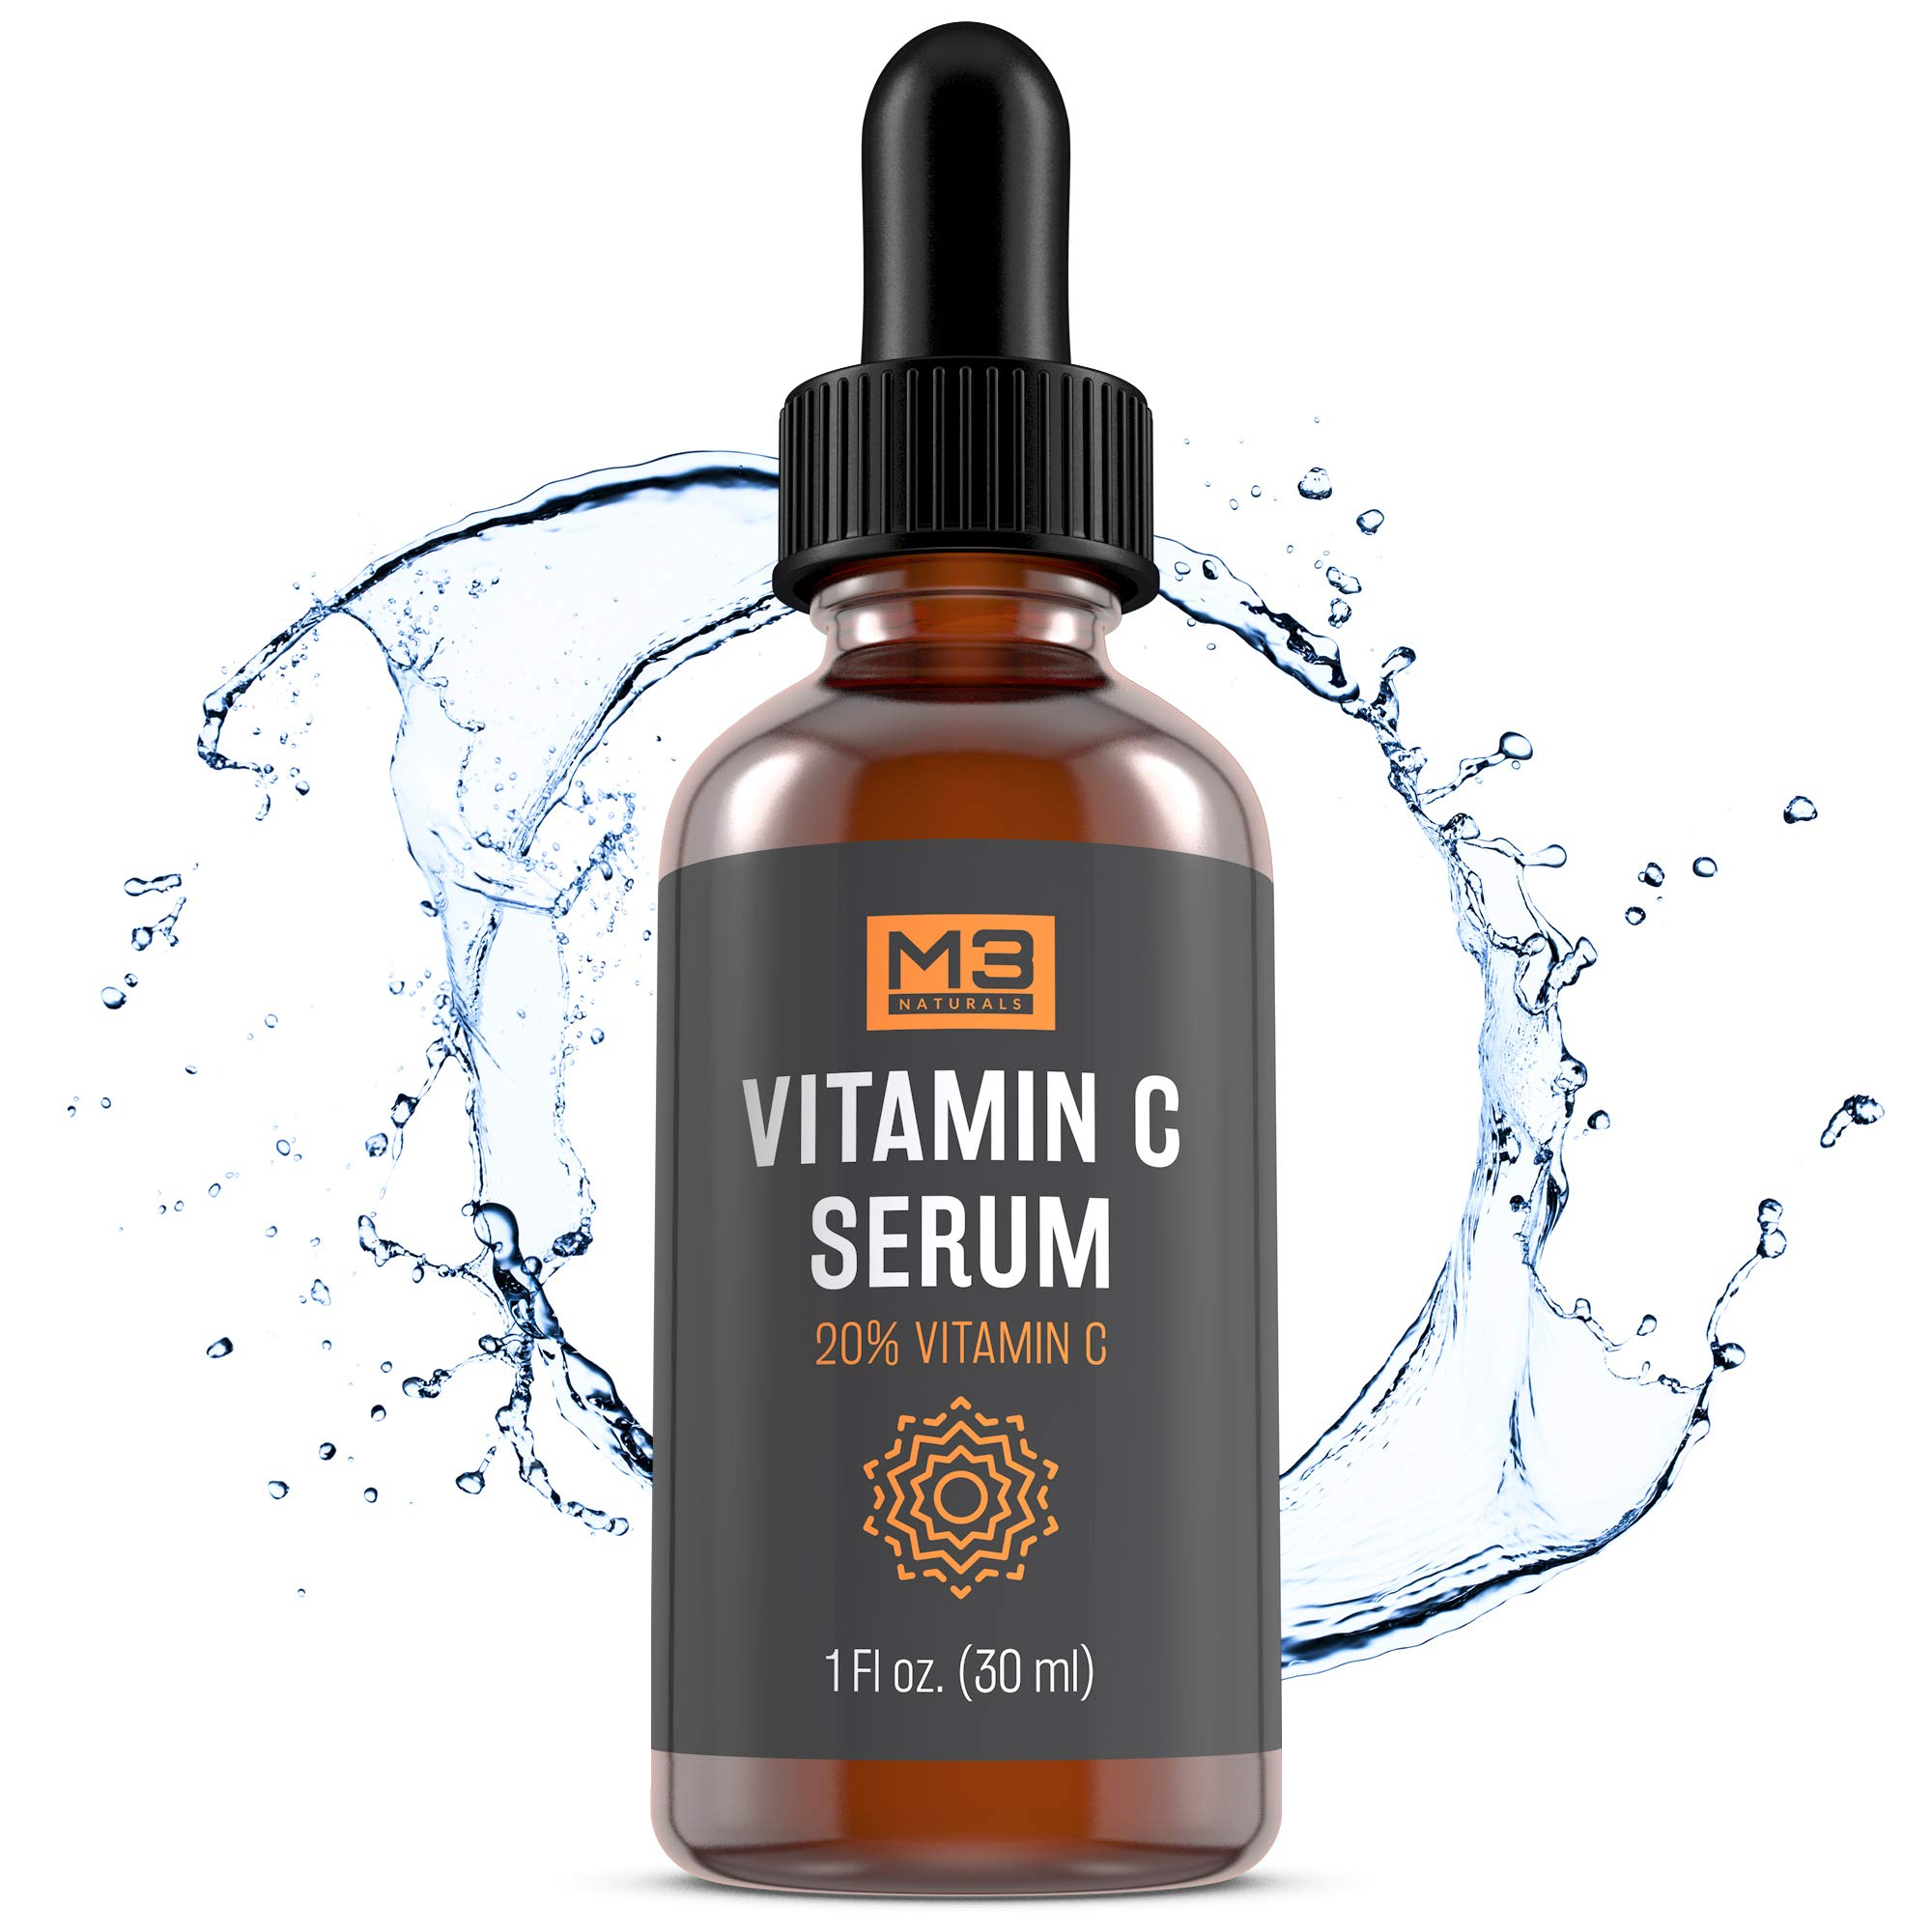 Vitamin C Serum for Face, Anti-Aging Topical Facial Serum with Hyaluronic Acid + Vitamin E, 1 fl oz